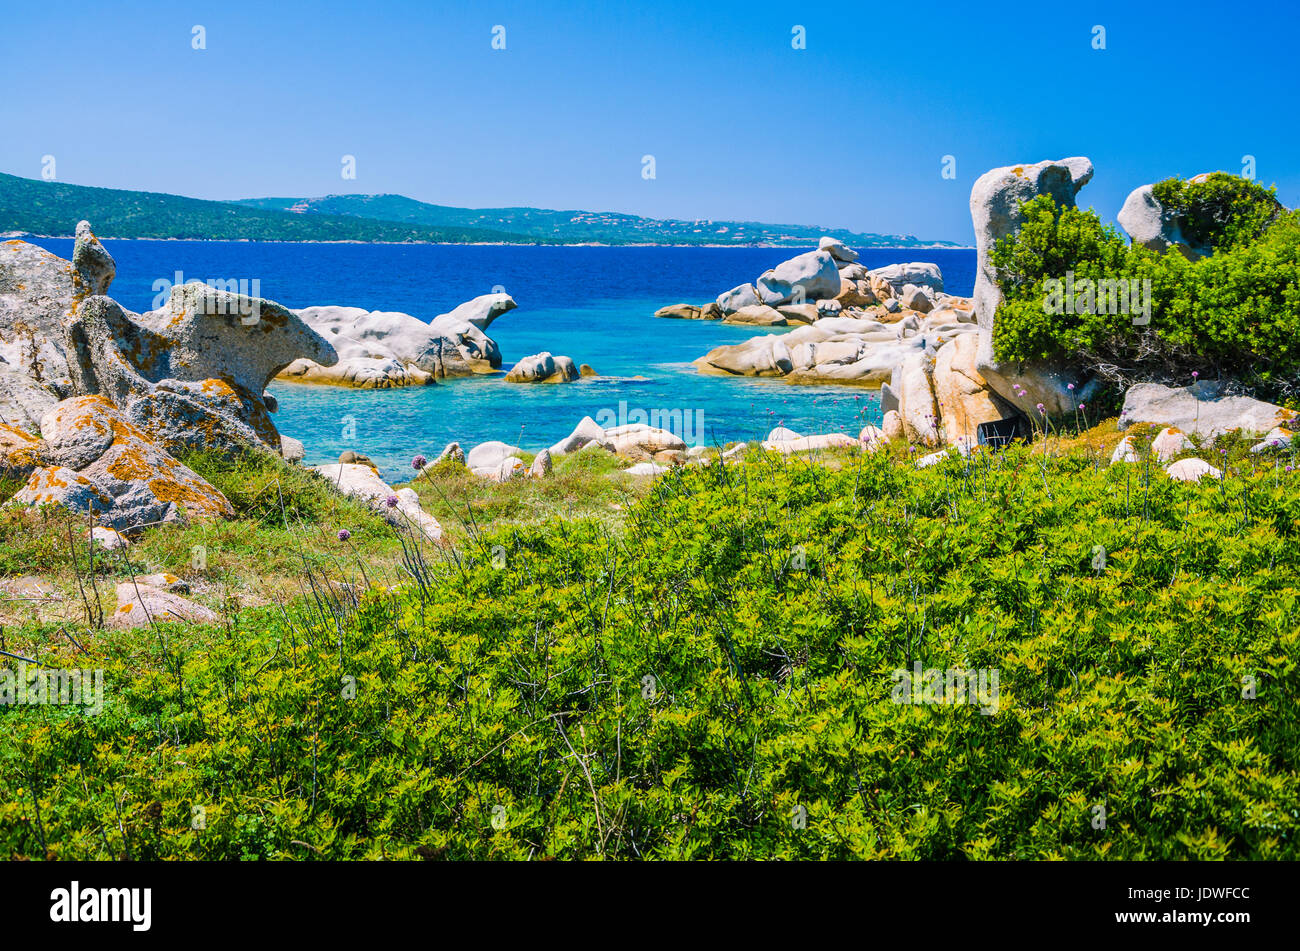 Costline with granite rocks and azure water near Porto Pollo, Sardinia, Italy - Stock Image